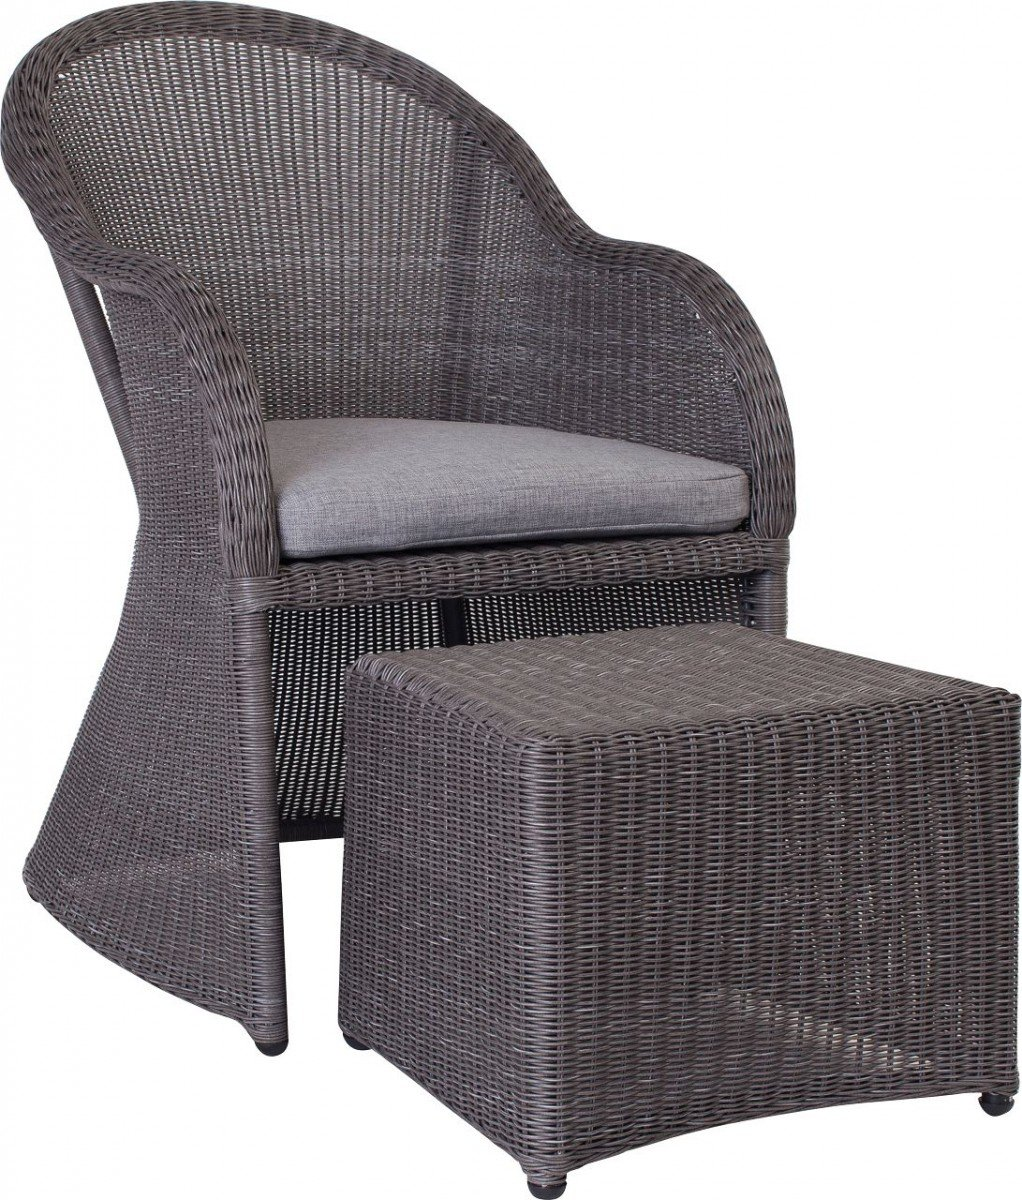 Dreams4home Lounge Sessel Sinai I Sessel Sitz Mit Hocker Mit